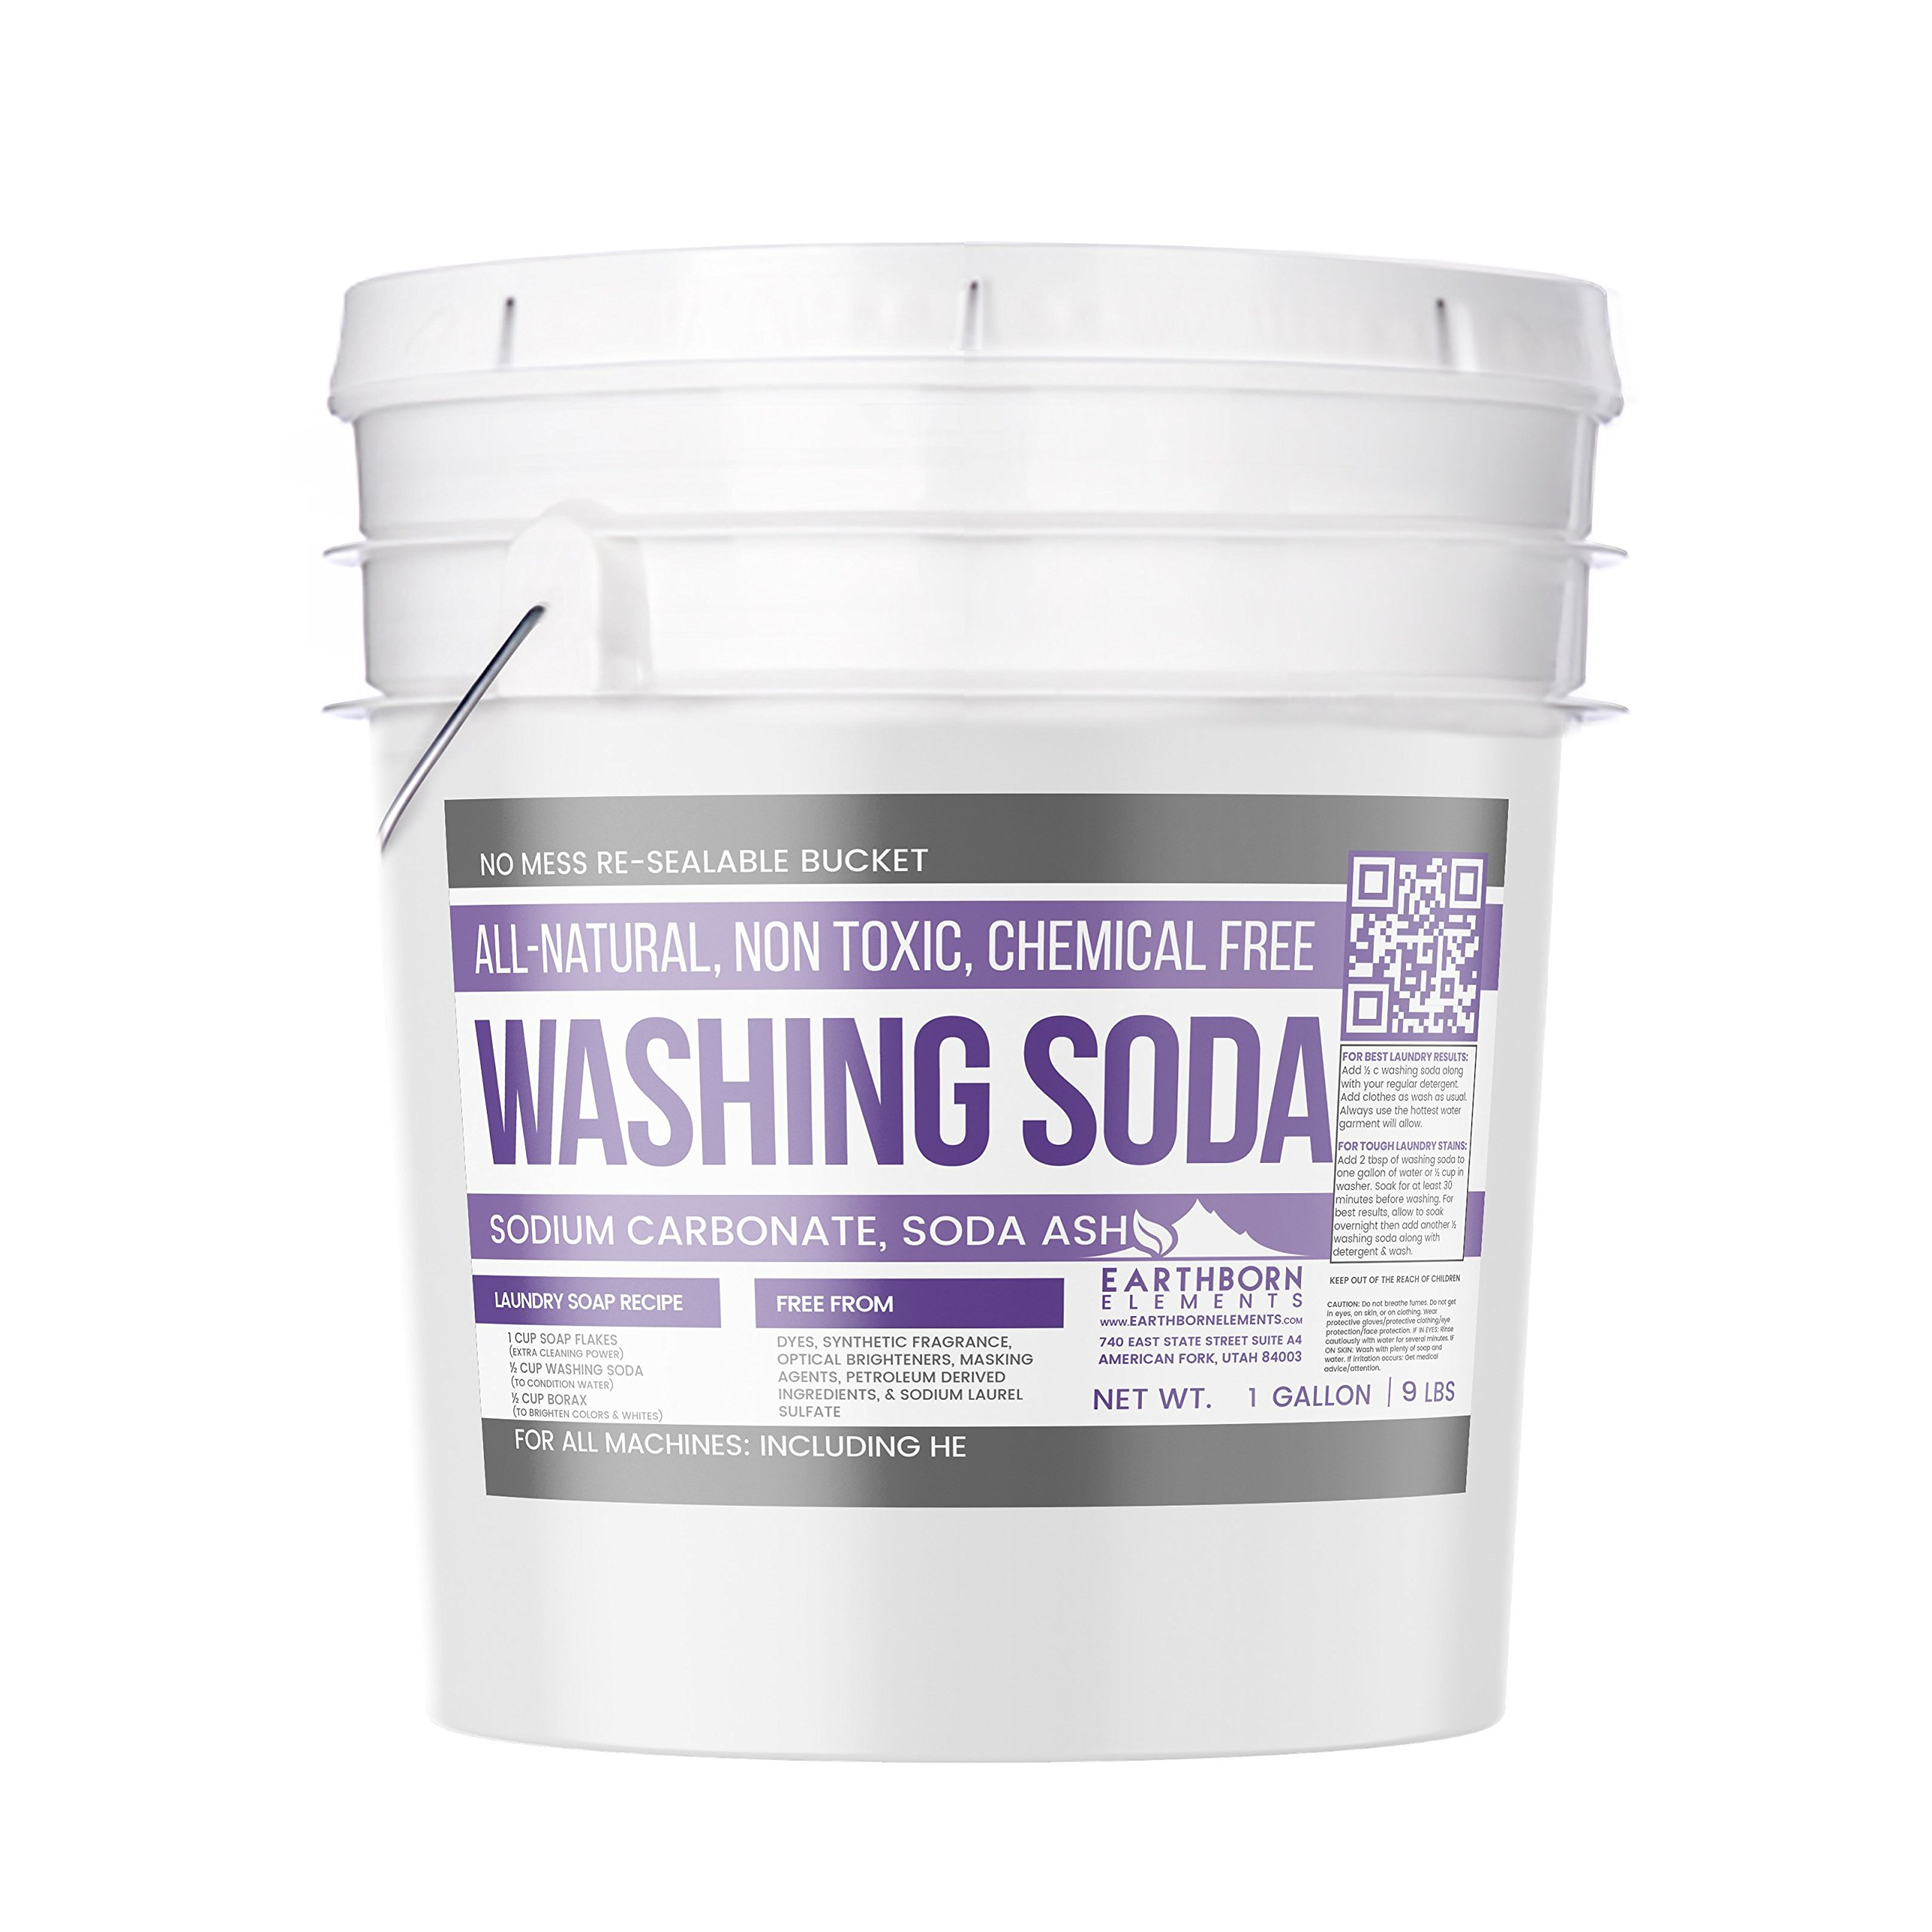 All-Natural Washing Soda (1 Gallon (9 lbs)) by Earthborn Elements, Soda Ash, Sodium Carbonate, Laundry Booster, Non Toxic, Hypoallergenic